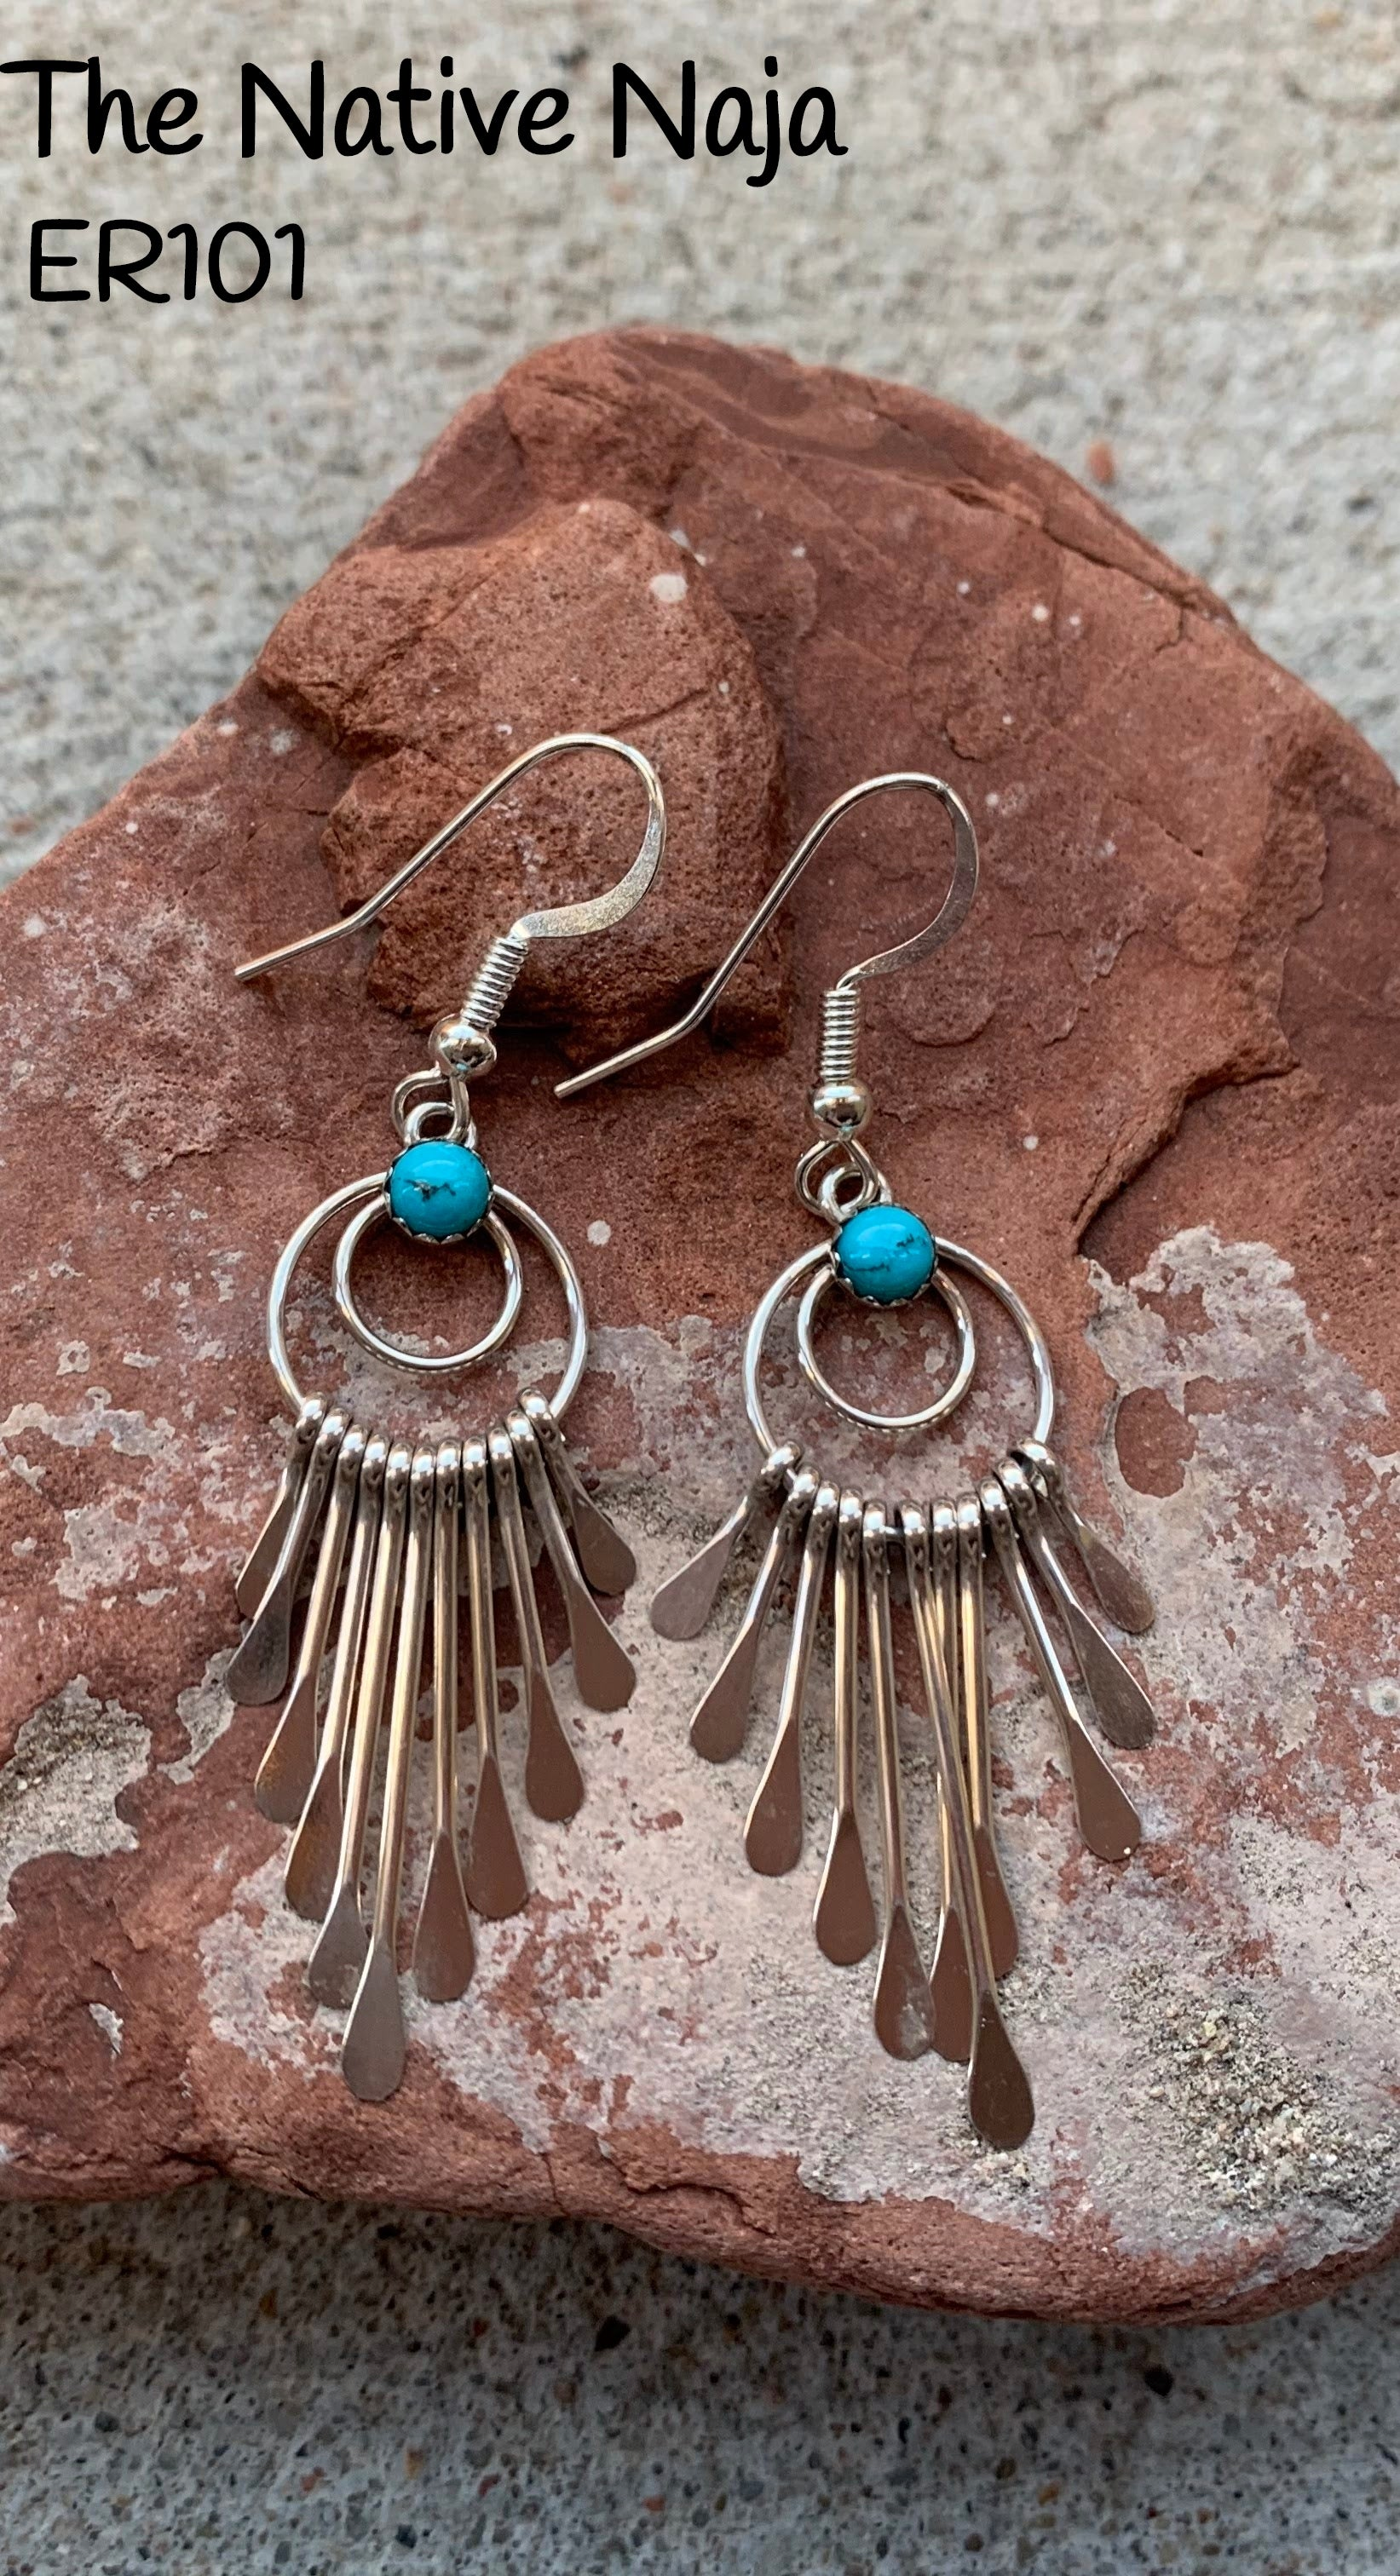 Navajo Sterling Silver & Kingman Turquoise Spoon Earrings ER101